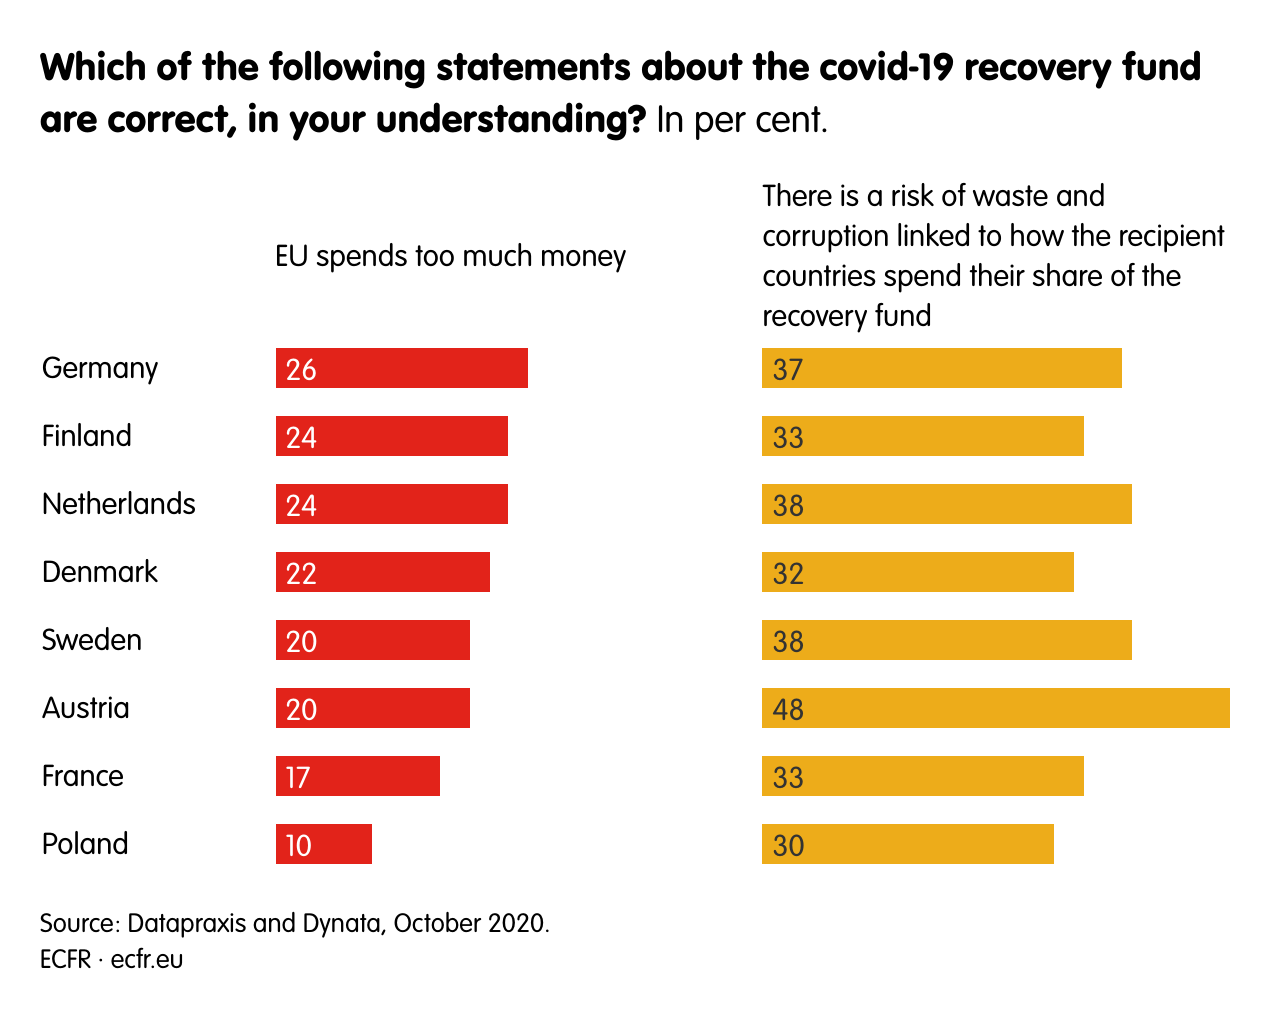 Which of the following statements about the covid-19 recovery fund are correct, in your understanding?